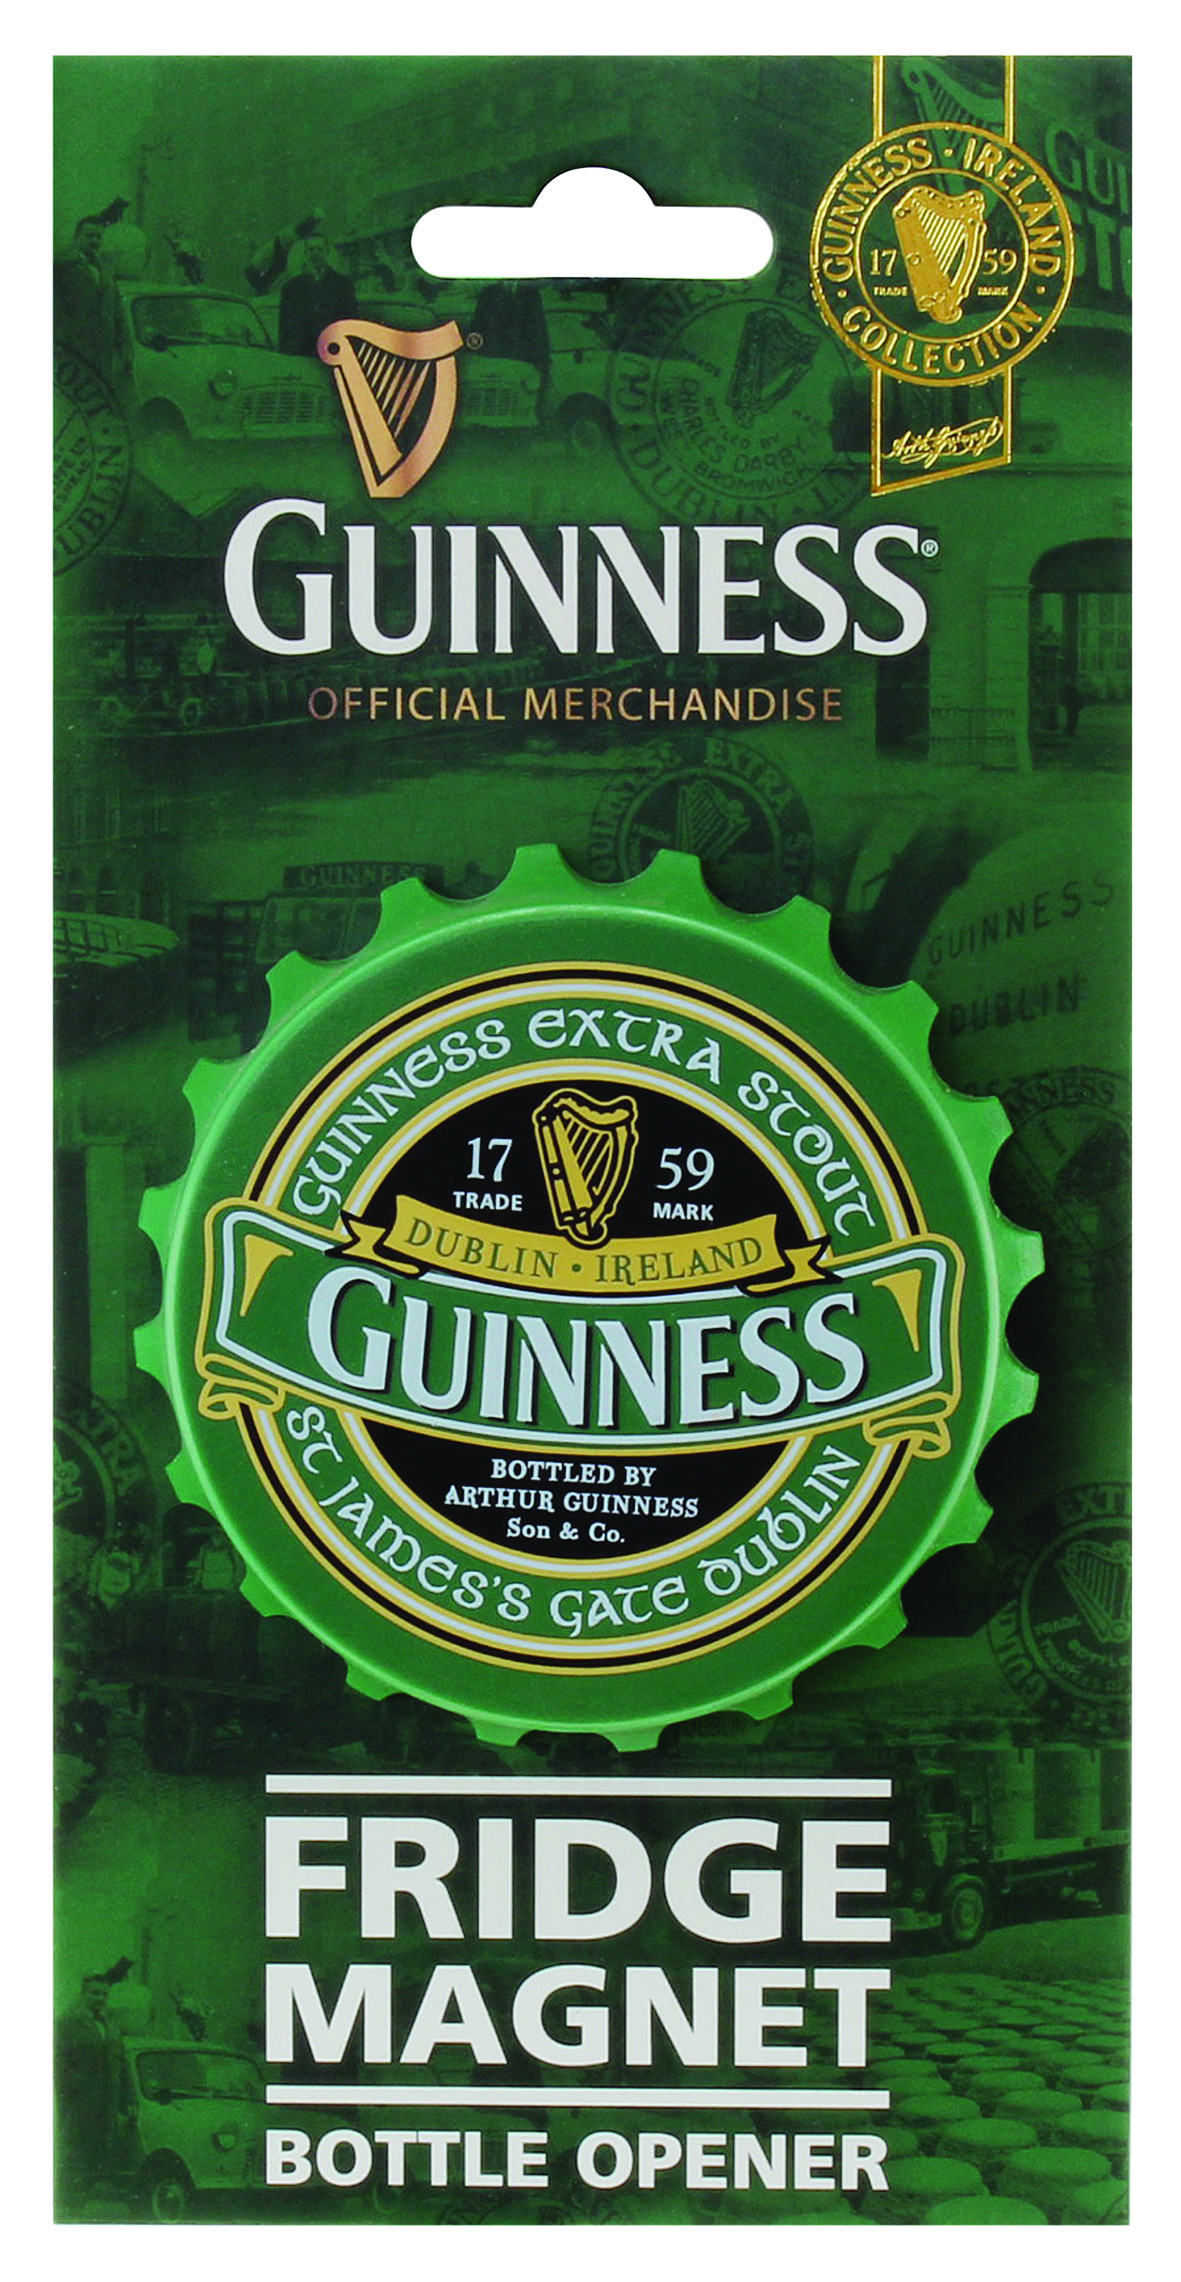 Guinness® Green Collection Fridge Magnet Bottle Opener